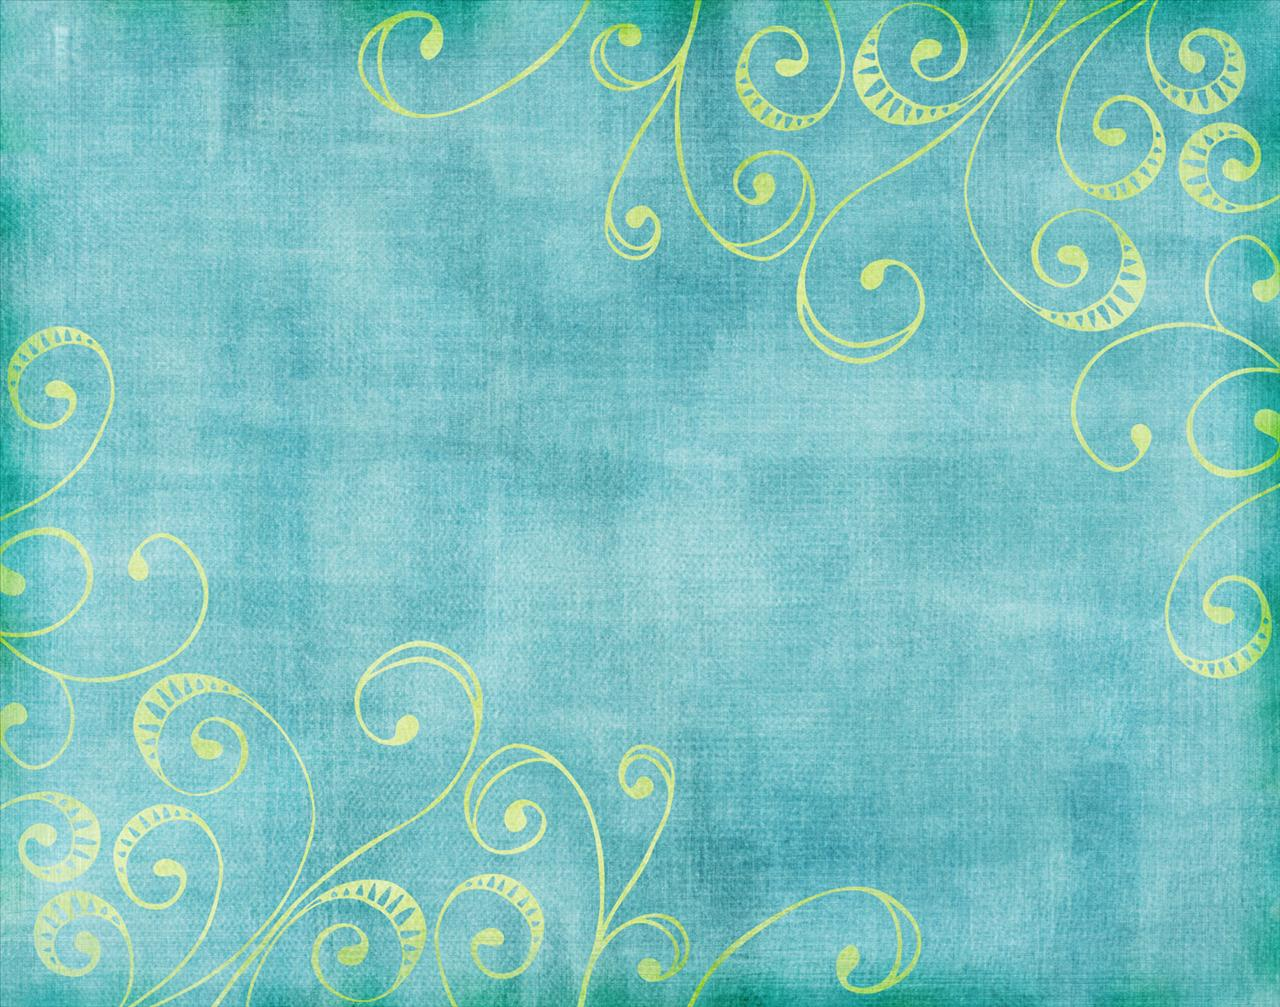 Light turquoise backgrounds posted on wednesday august 27th 2014 at